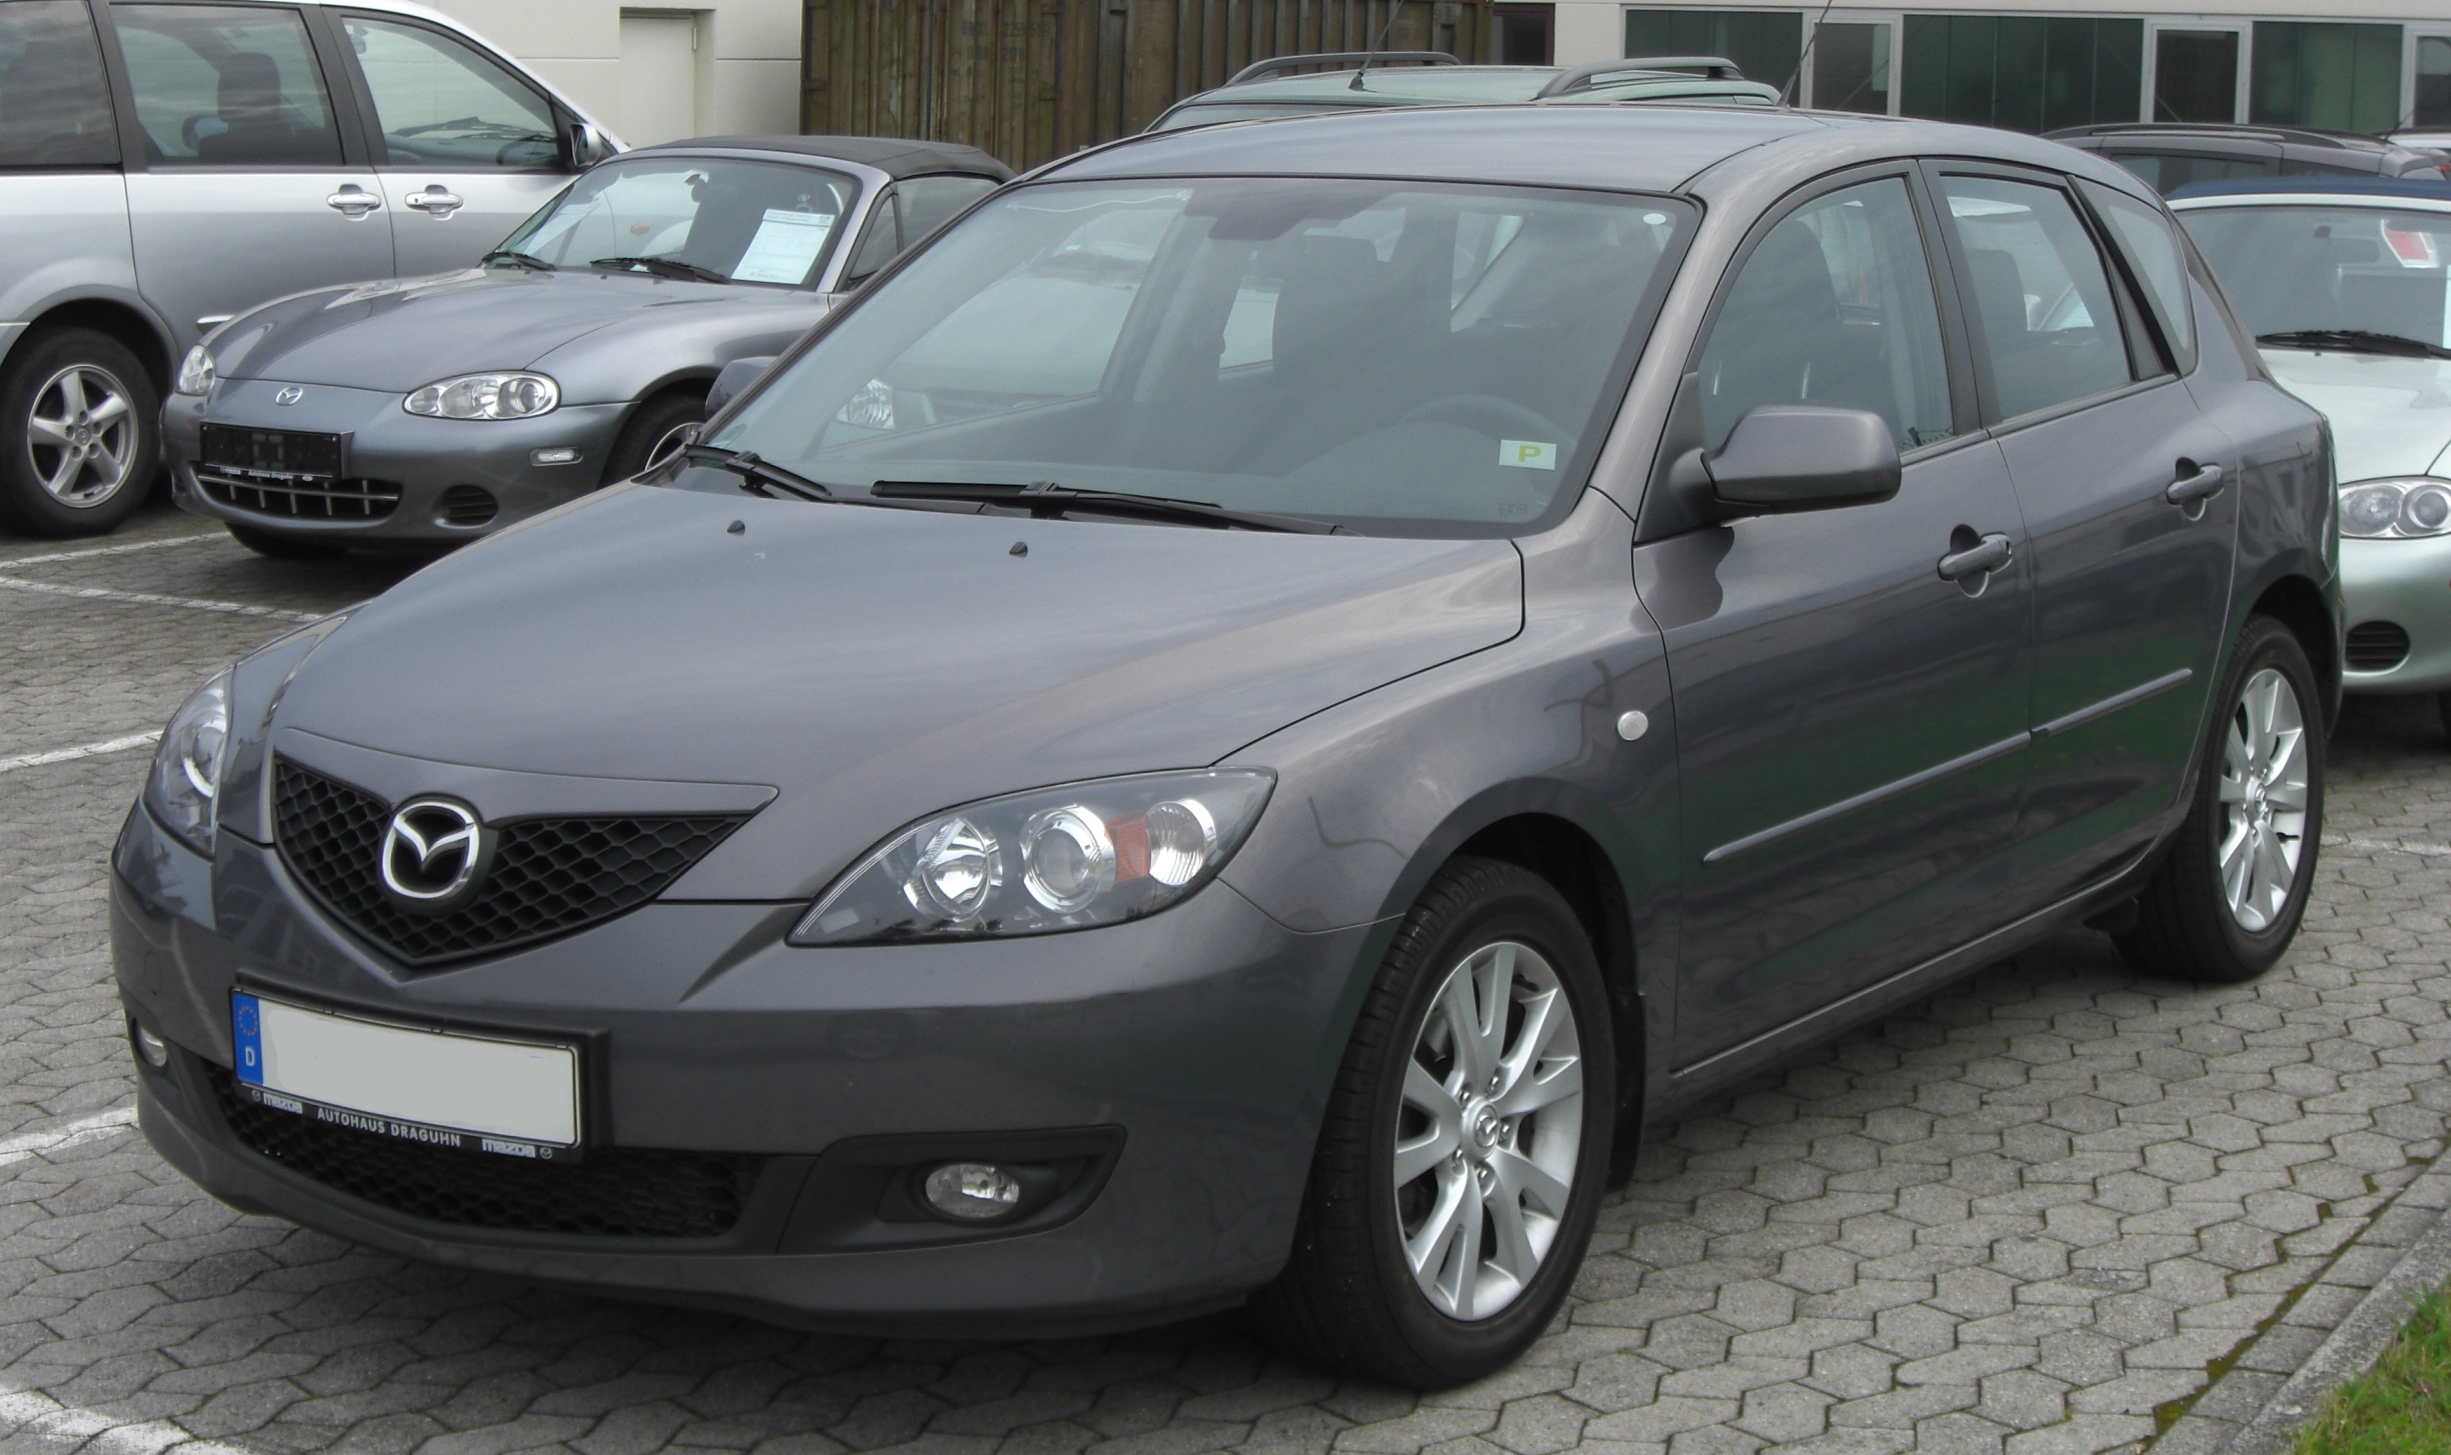 file:mazda 3 facelift front - wikimedia commons